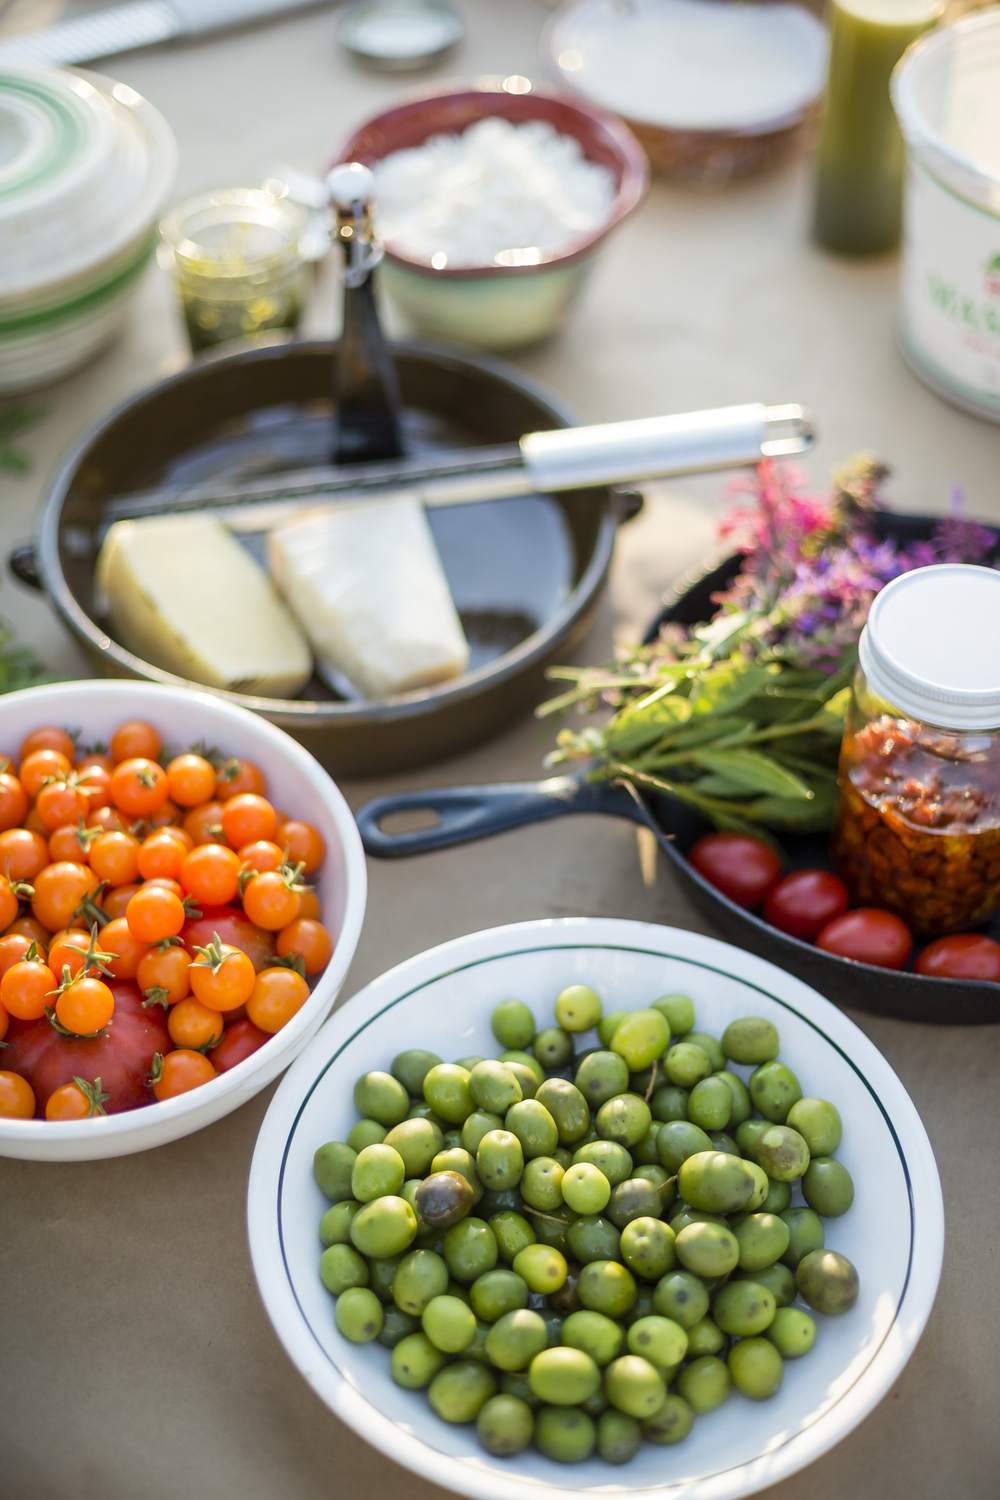 On November 7th, 2015 in Healdsburg, CA olives from the DaVero Farms & Winery groves are on the menu at a party held for their friends and employees at their tasting room property. DaVero is a biodynamic family farm which produces small lots of Italian wine and olive oil in the Dry Creek Valley of Sonoma County and is owned by Colleen McGlynn and her husband and QuickBooks creator Ridgely Evers. Sonoma has become America's test kitchen, 1768-square miles chocked full of wineries, dairies, micro-distilleries, bakeries, restaurants, gardens, and orchards.